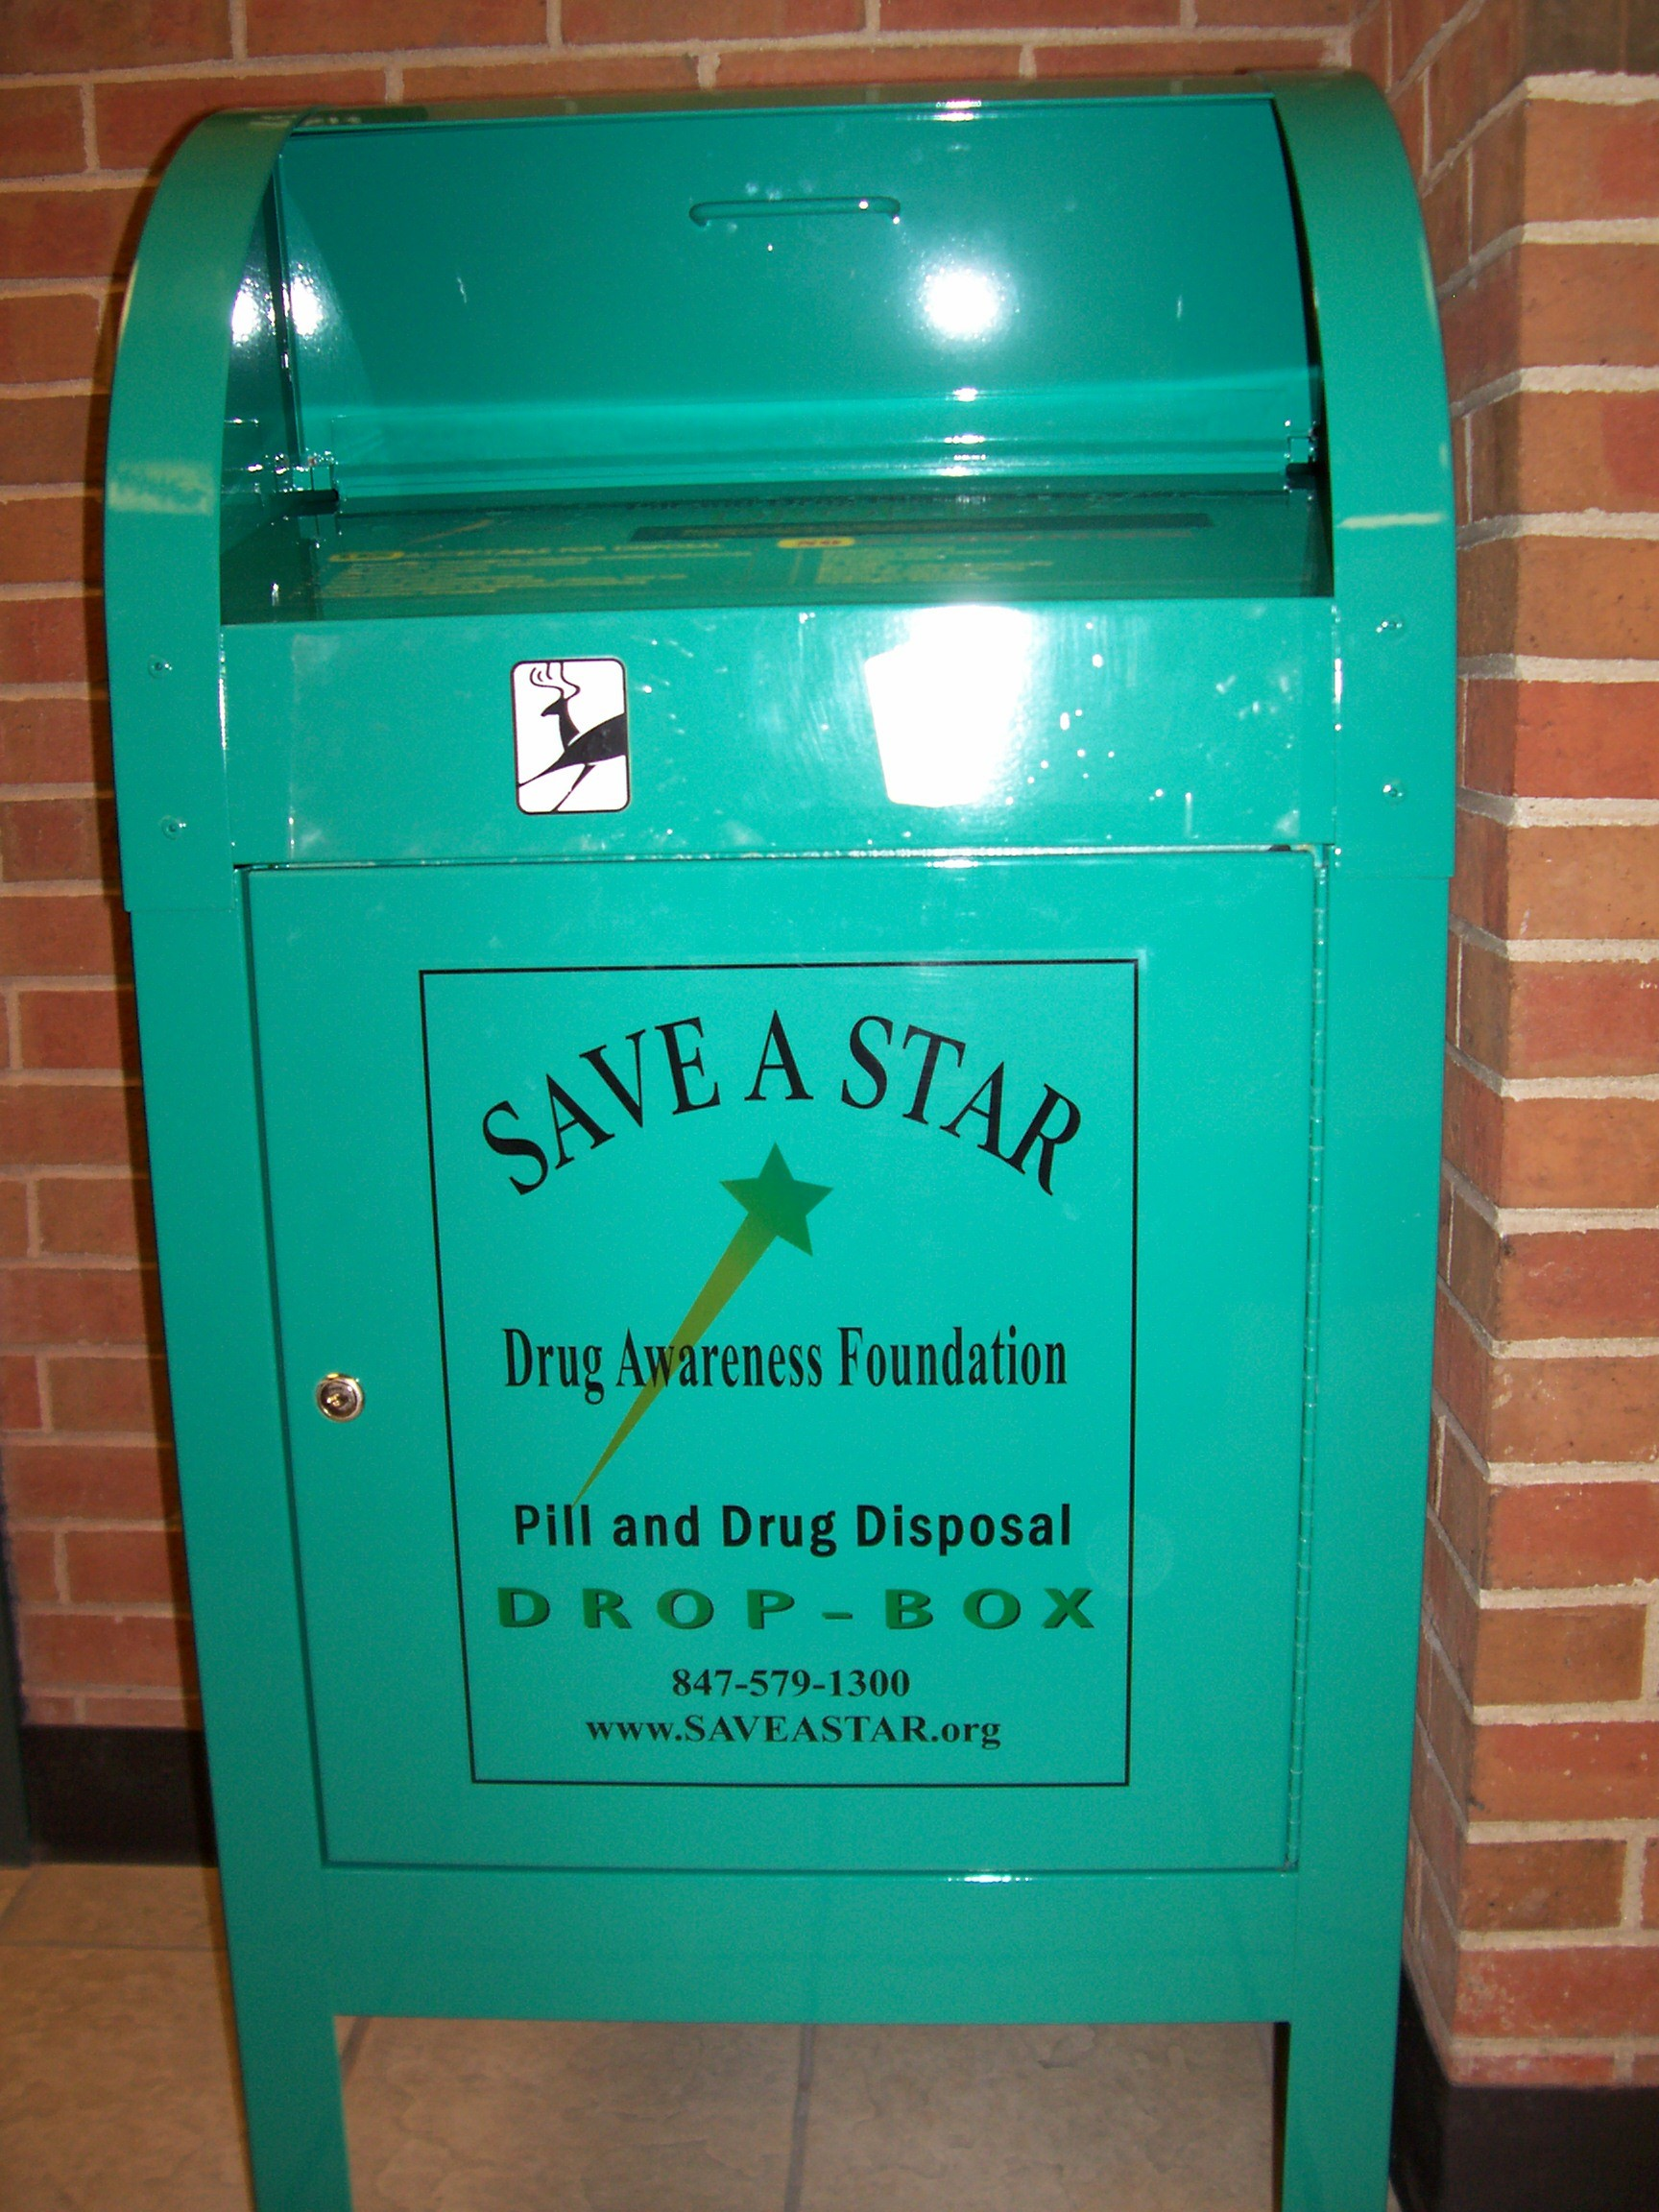 """Save a Star Drug Awareness Foundation - Pill and Drug disposal drop box"""